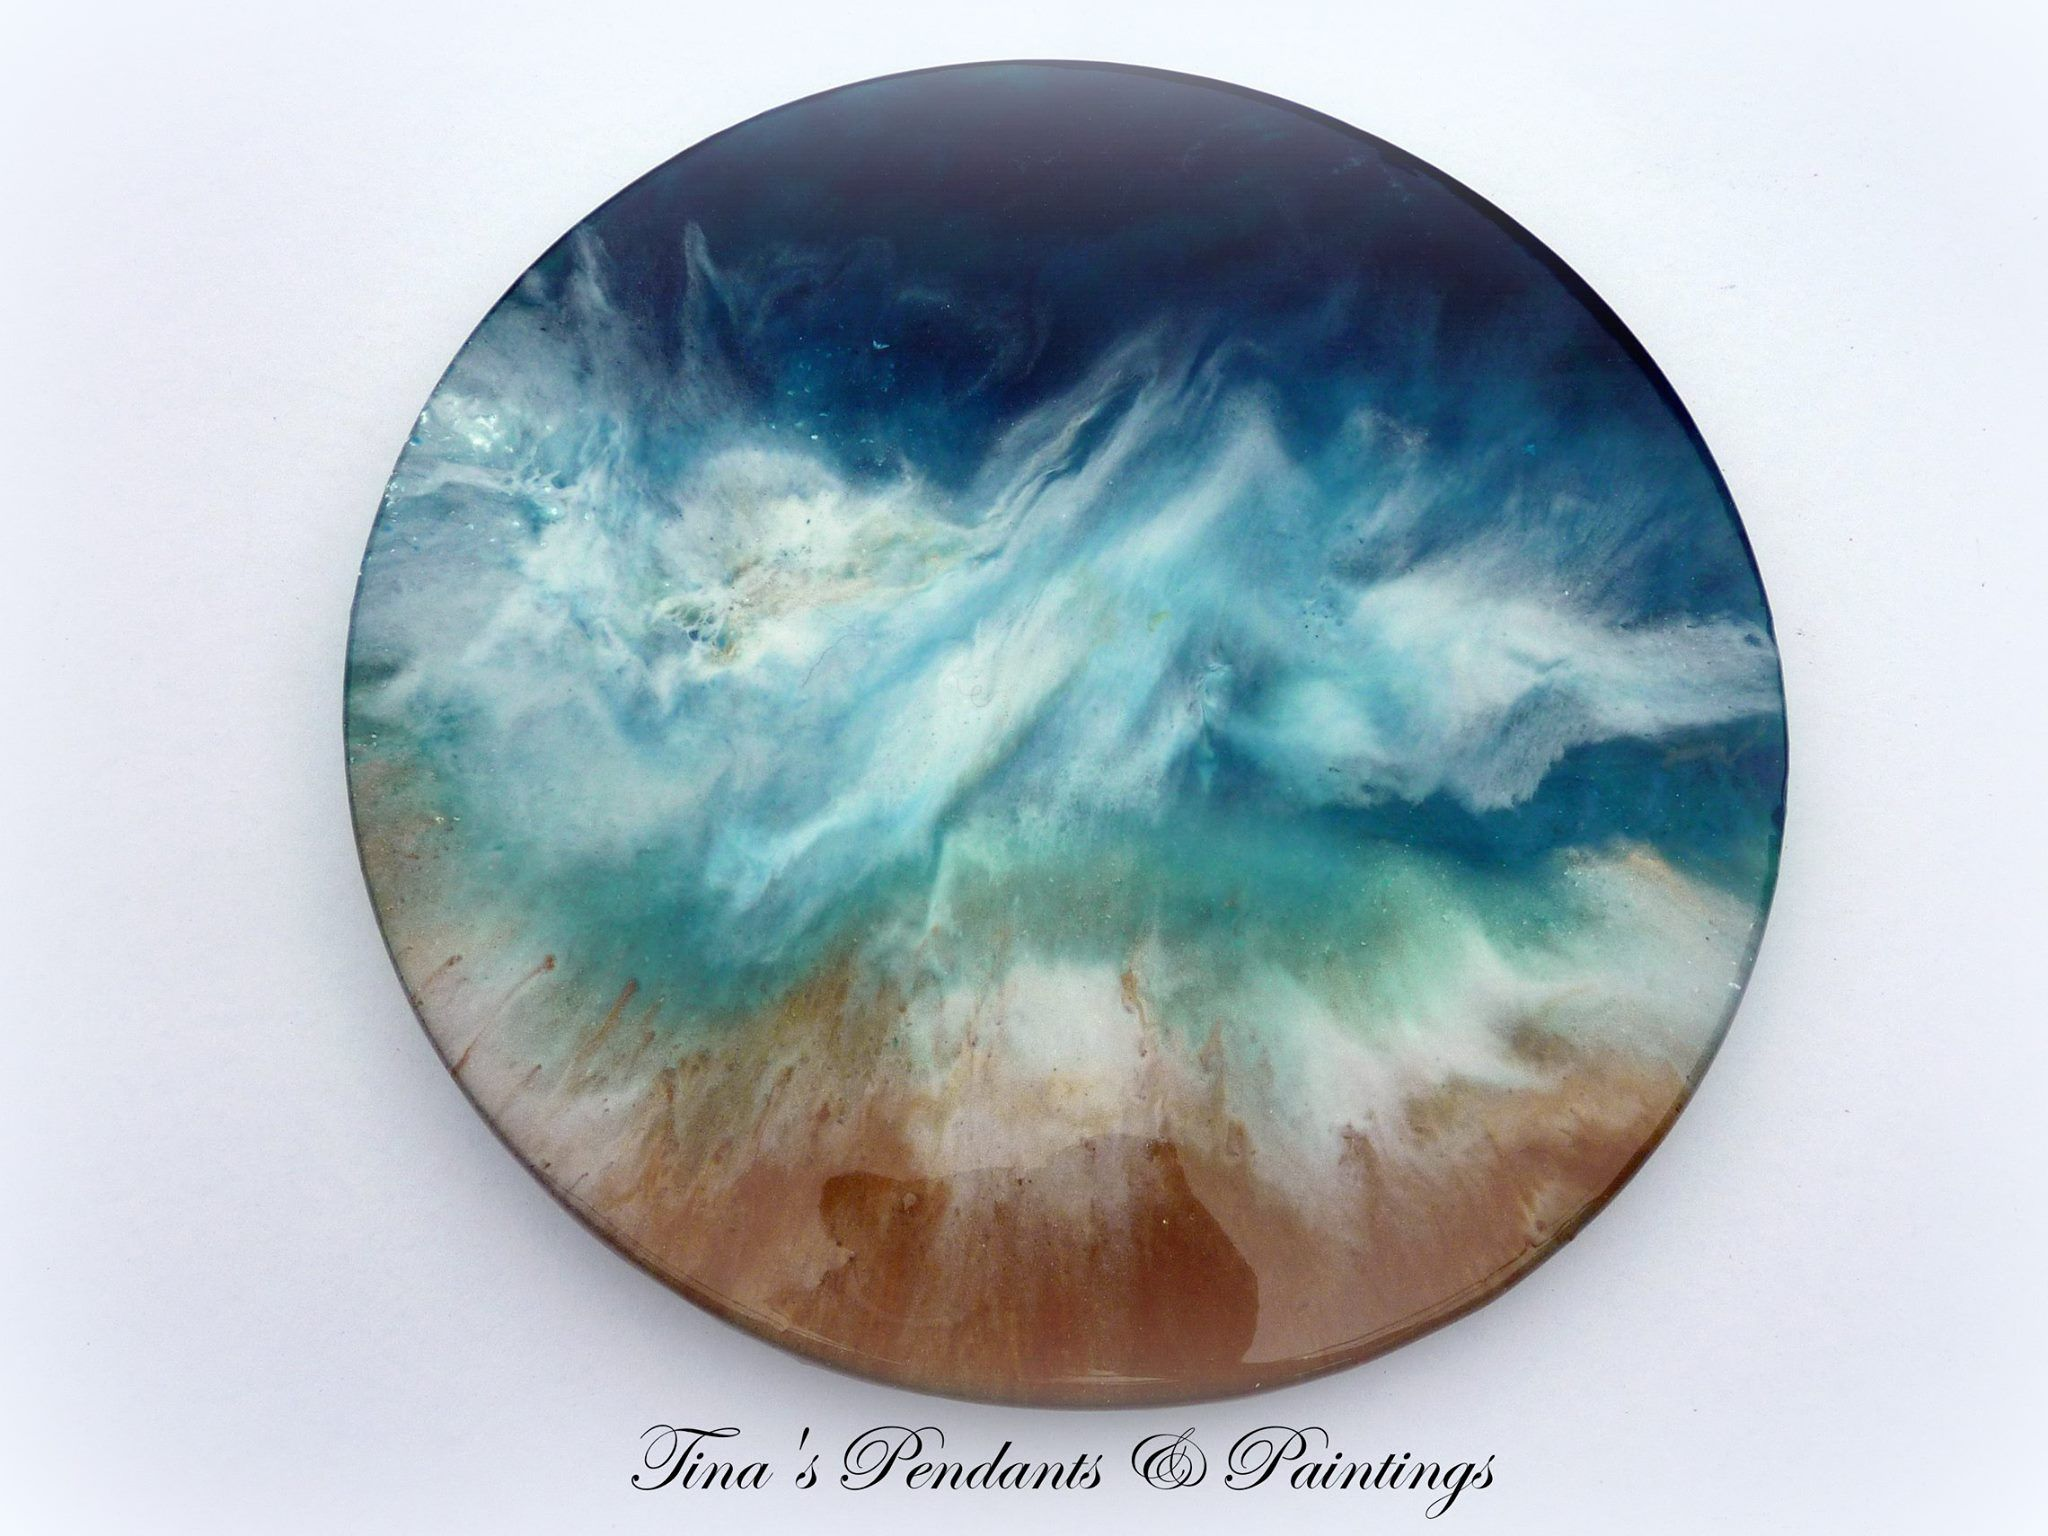 Lazy susan hand painted and epoxied